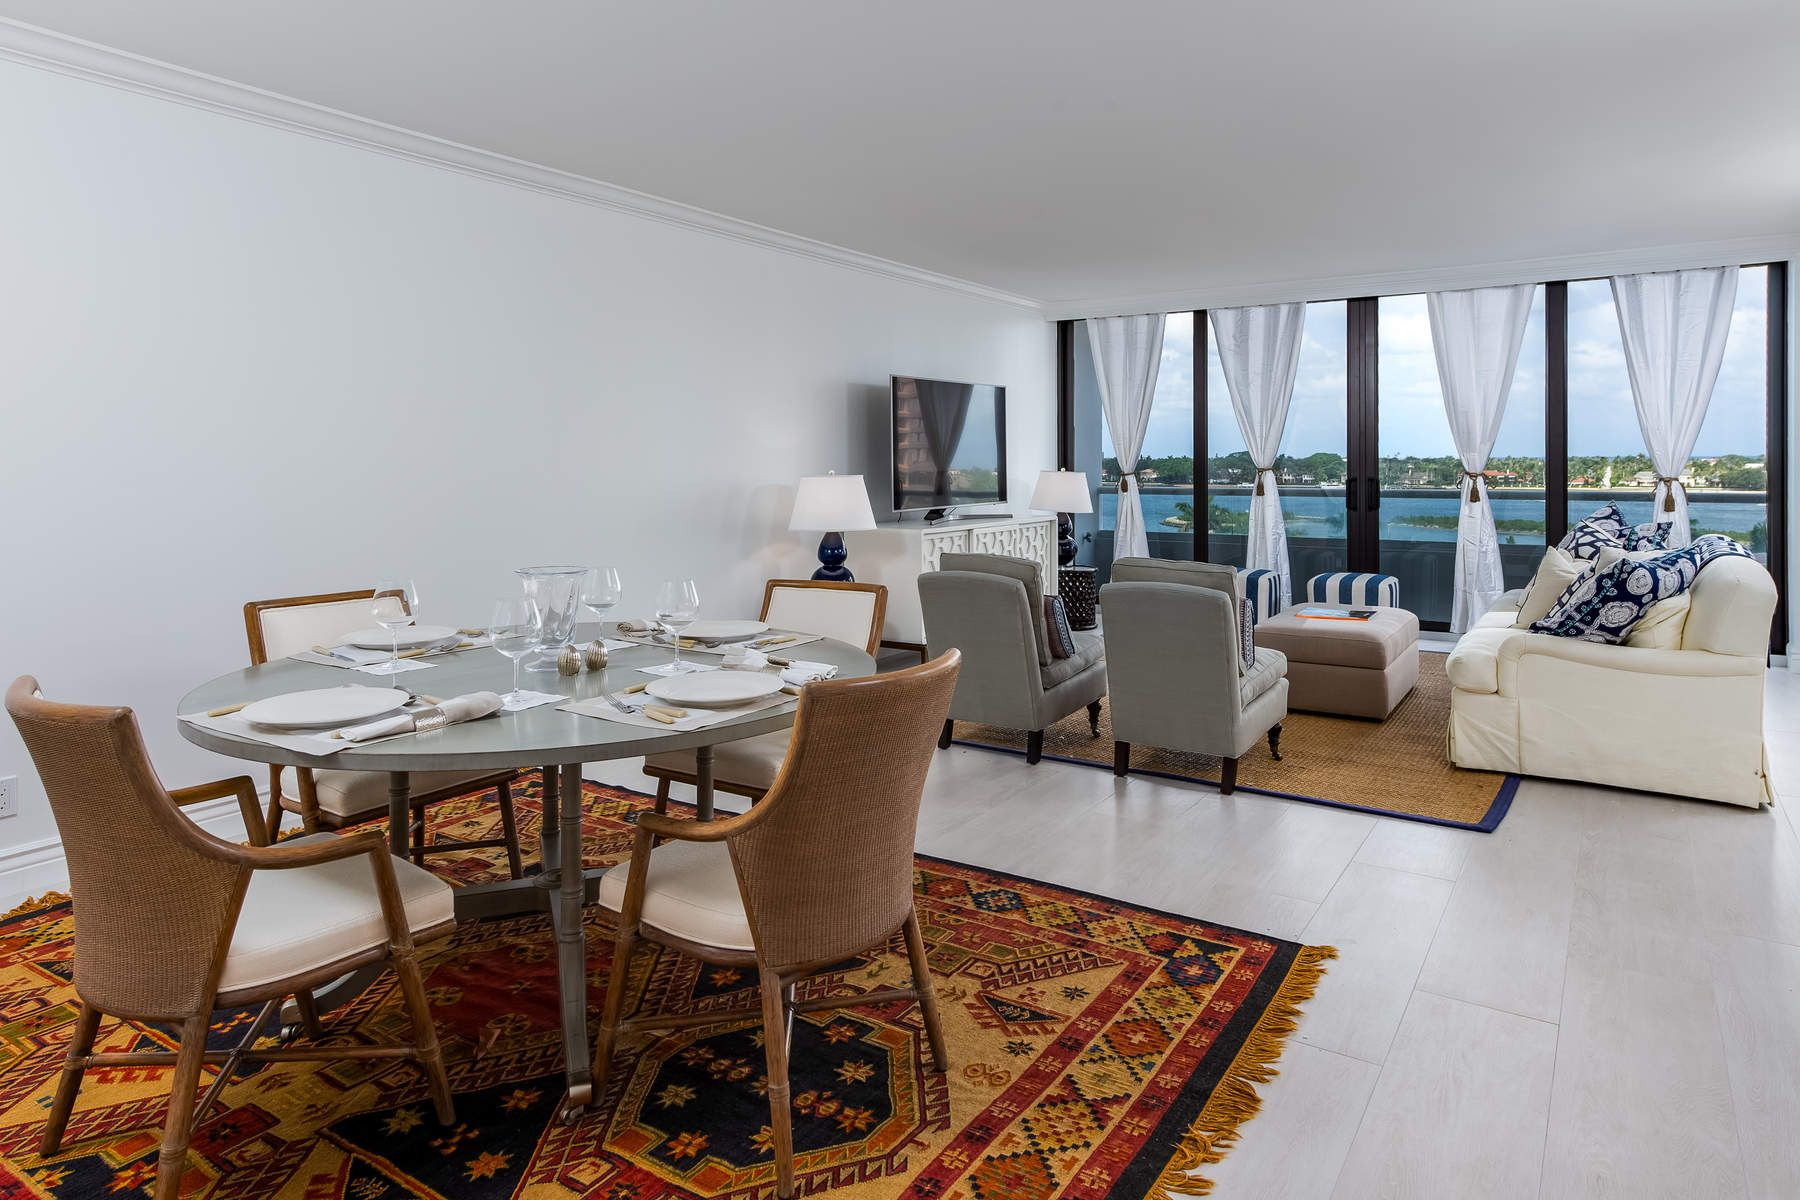 Condominium for Sale at Trump Plaza Waterview Apartment 529 S Flagler Drive 6F West Palm Beach, Florida 33401 United States